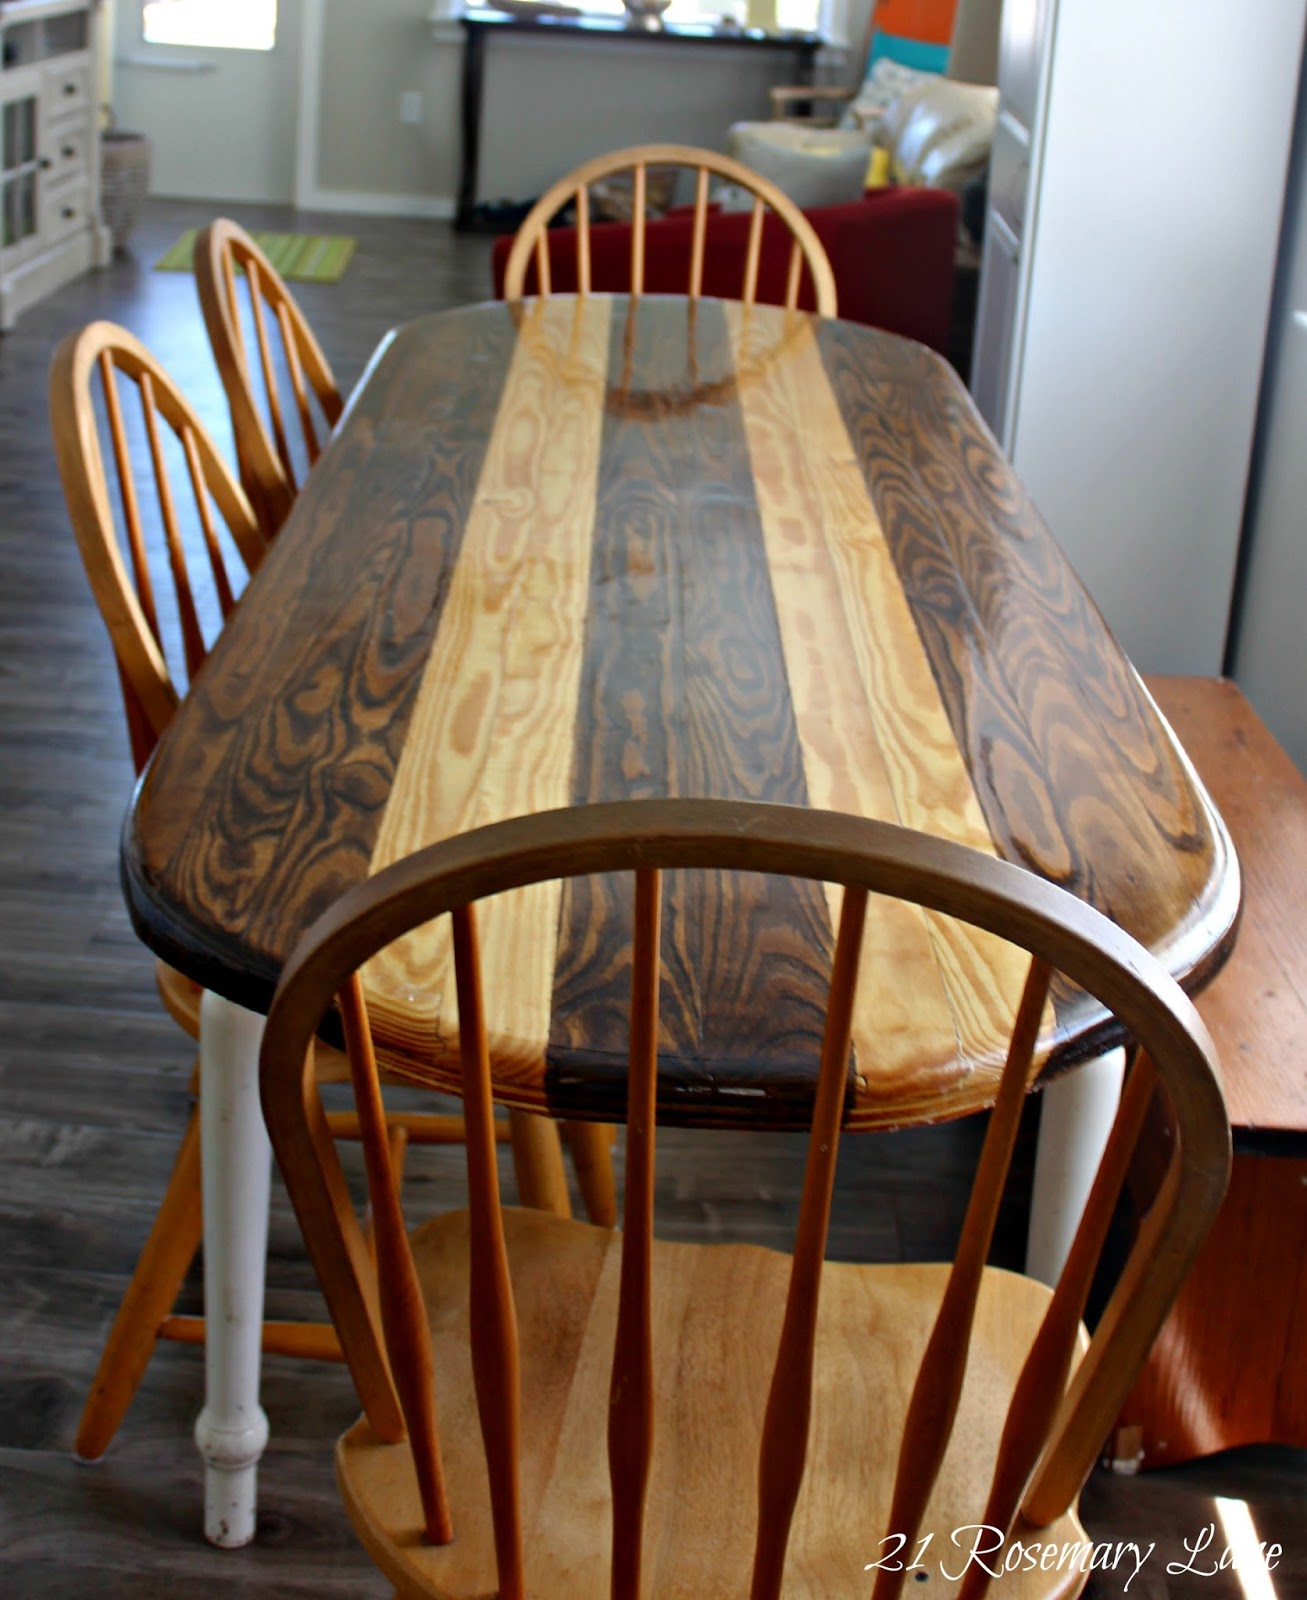 thrifty beach home remodel after beachy kitchen table In keeping with the beachy theme of their home Ken decided to create a surf board inspired table top for the new dining table This beautiful top was made